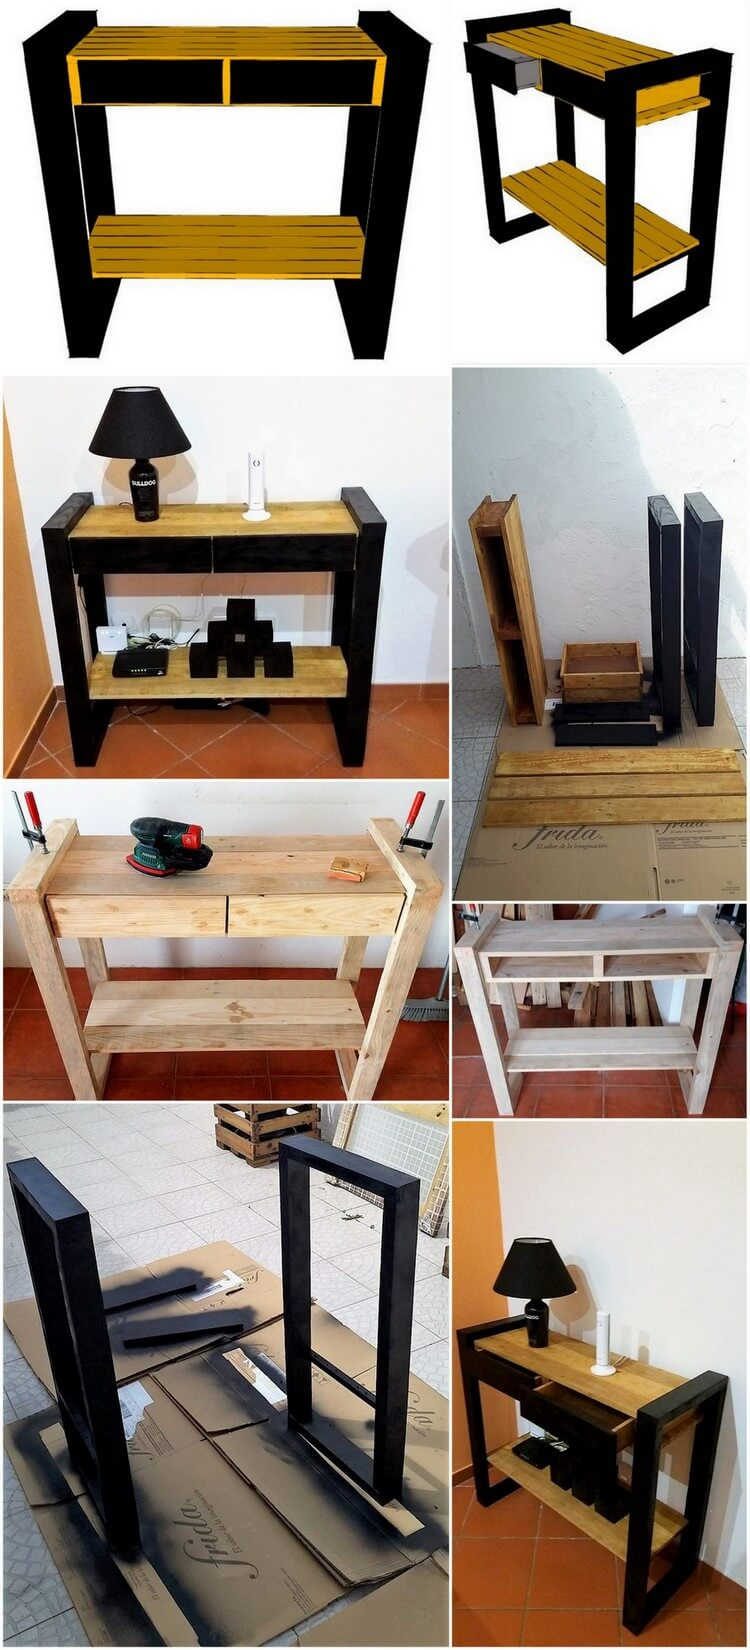 DIY Wood Pallet End Table Step by Step Plan